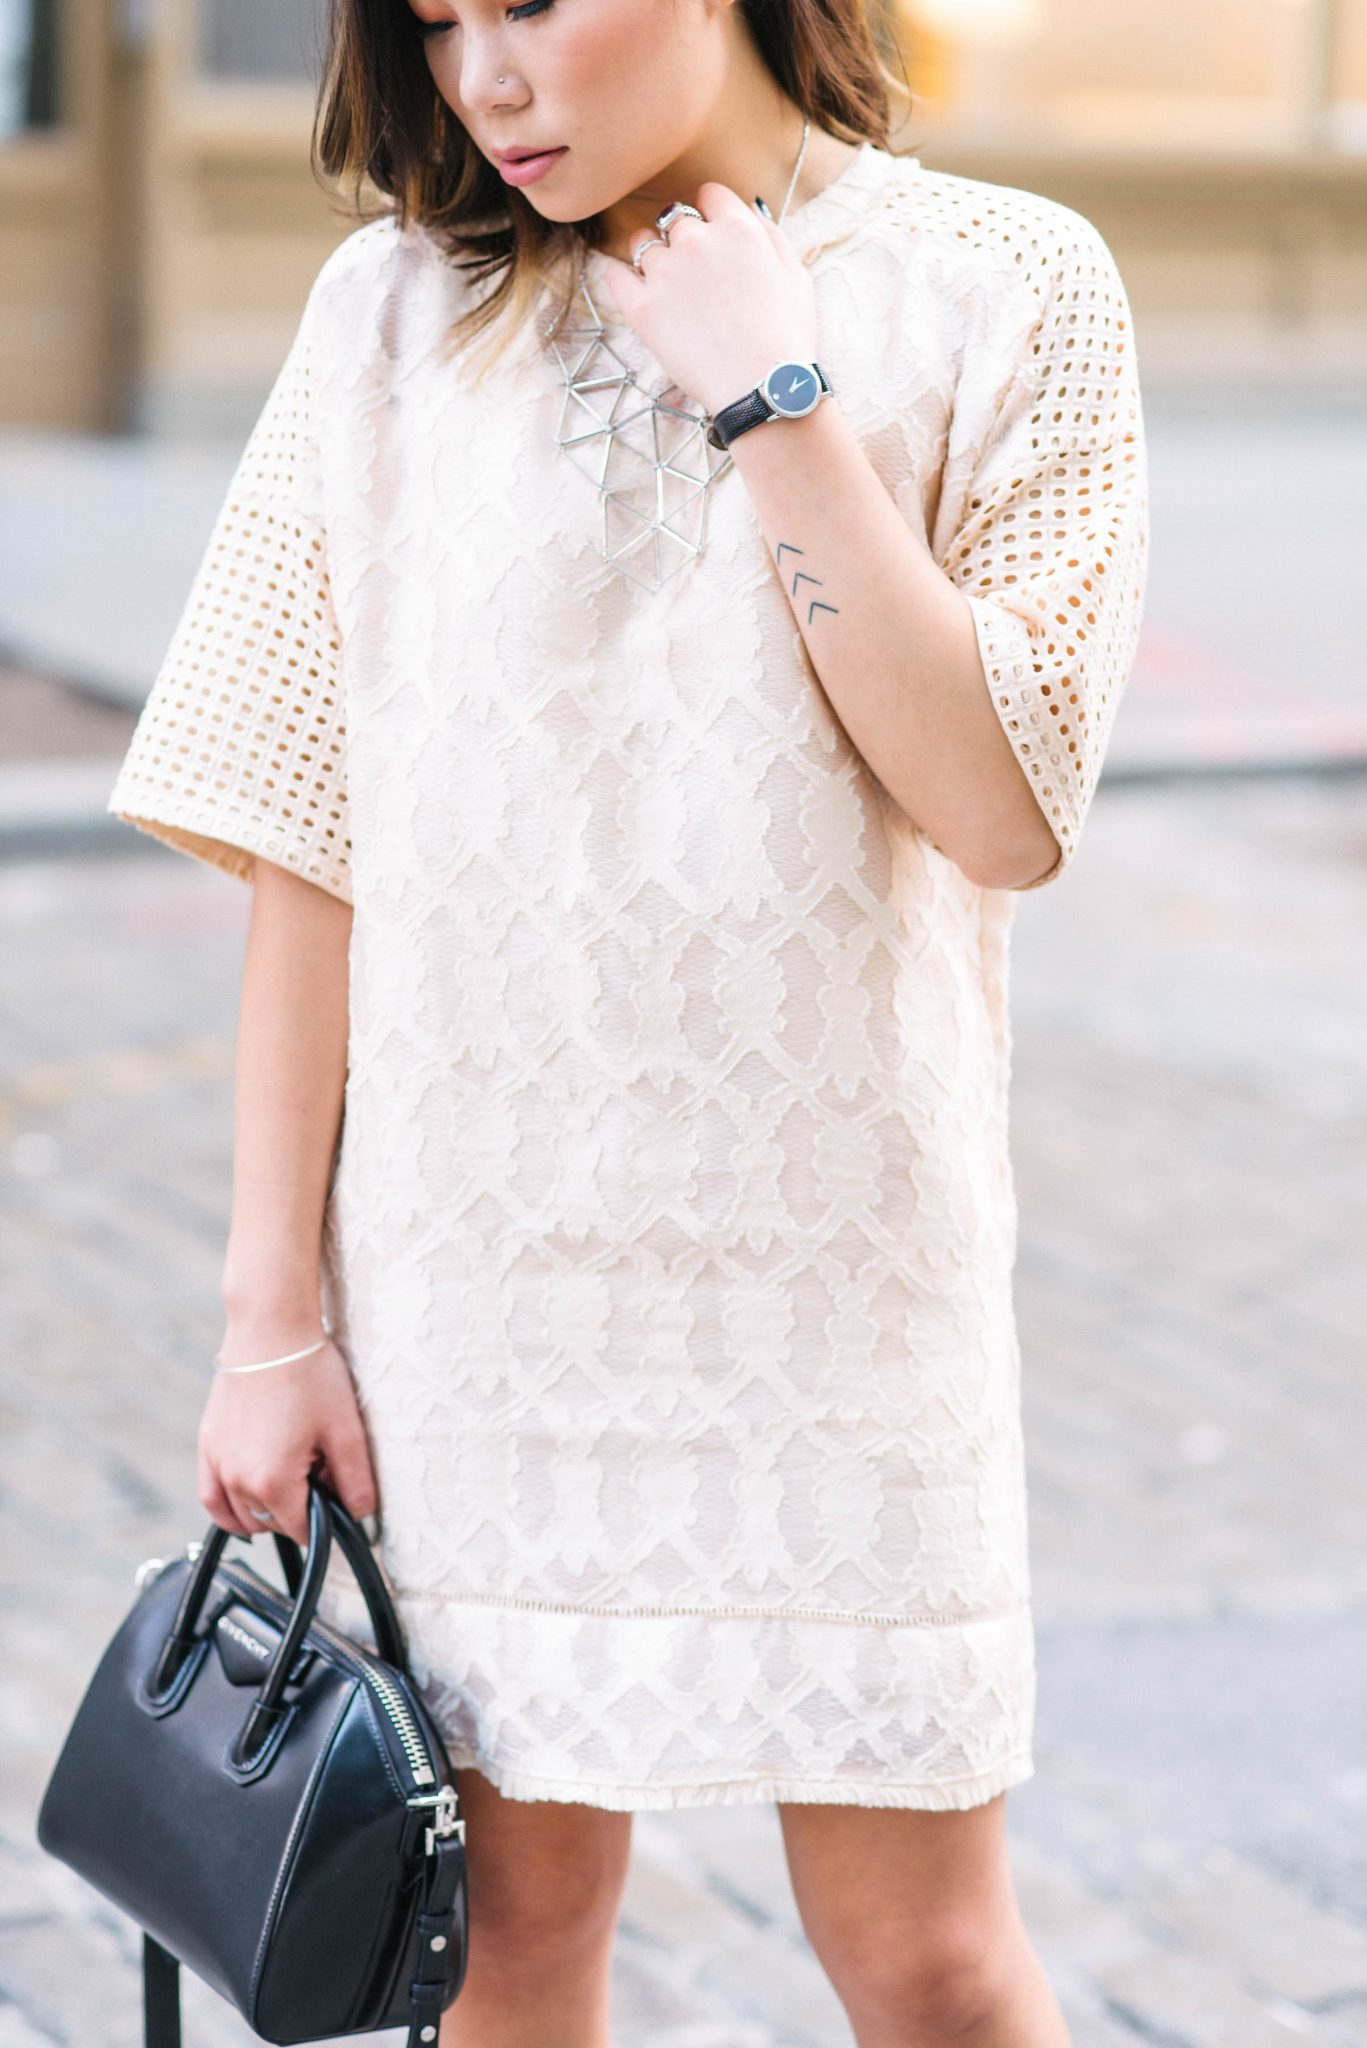 Kasey Ma, influencer and blogger of The StyleWright, wearing Tatsuaki by Dan Liu during New York Fashion Week 2017 in Tribeca, Manhattan, New York City